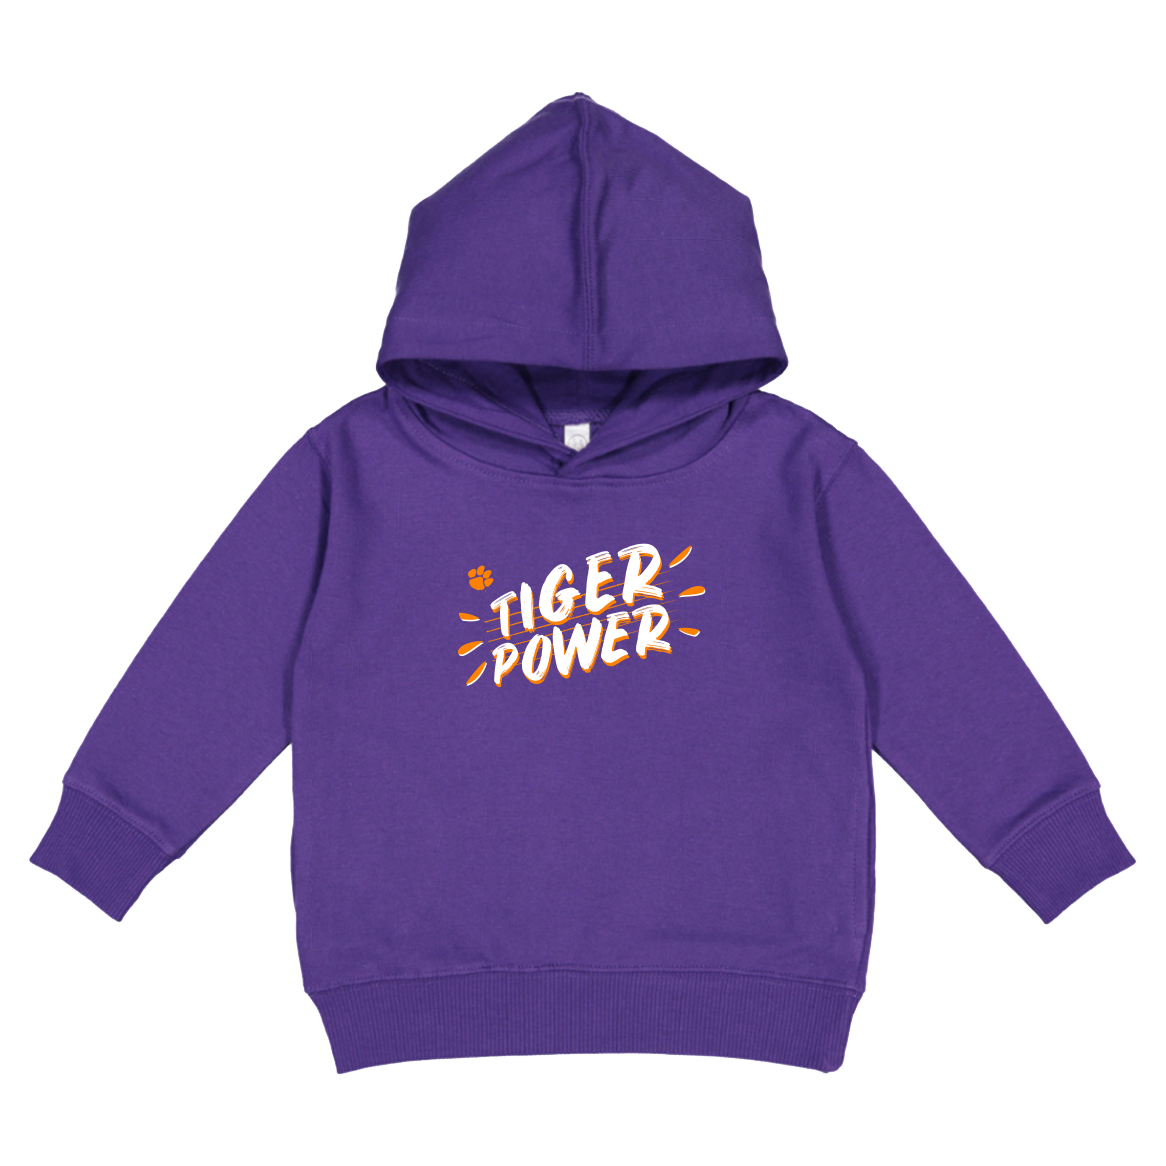 Toddler Hoodie Tiger Power